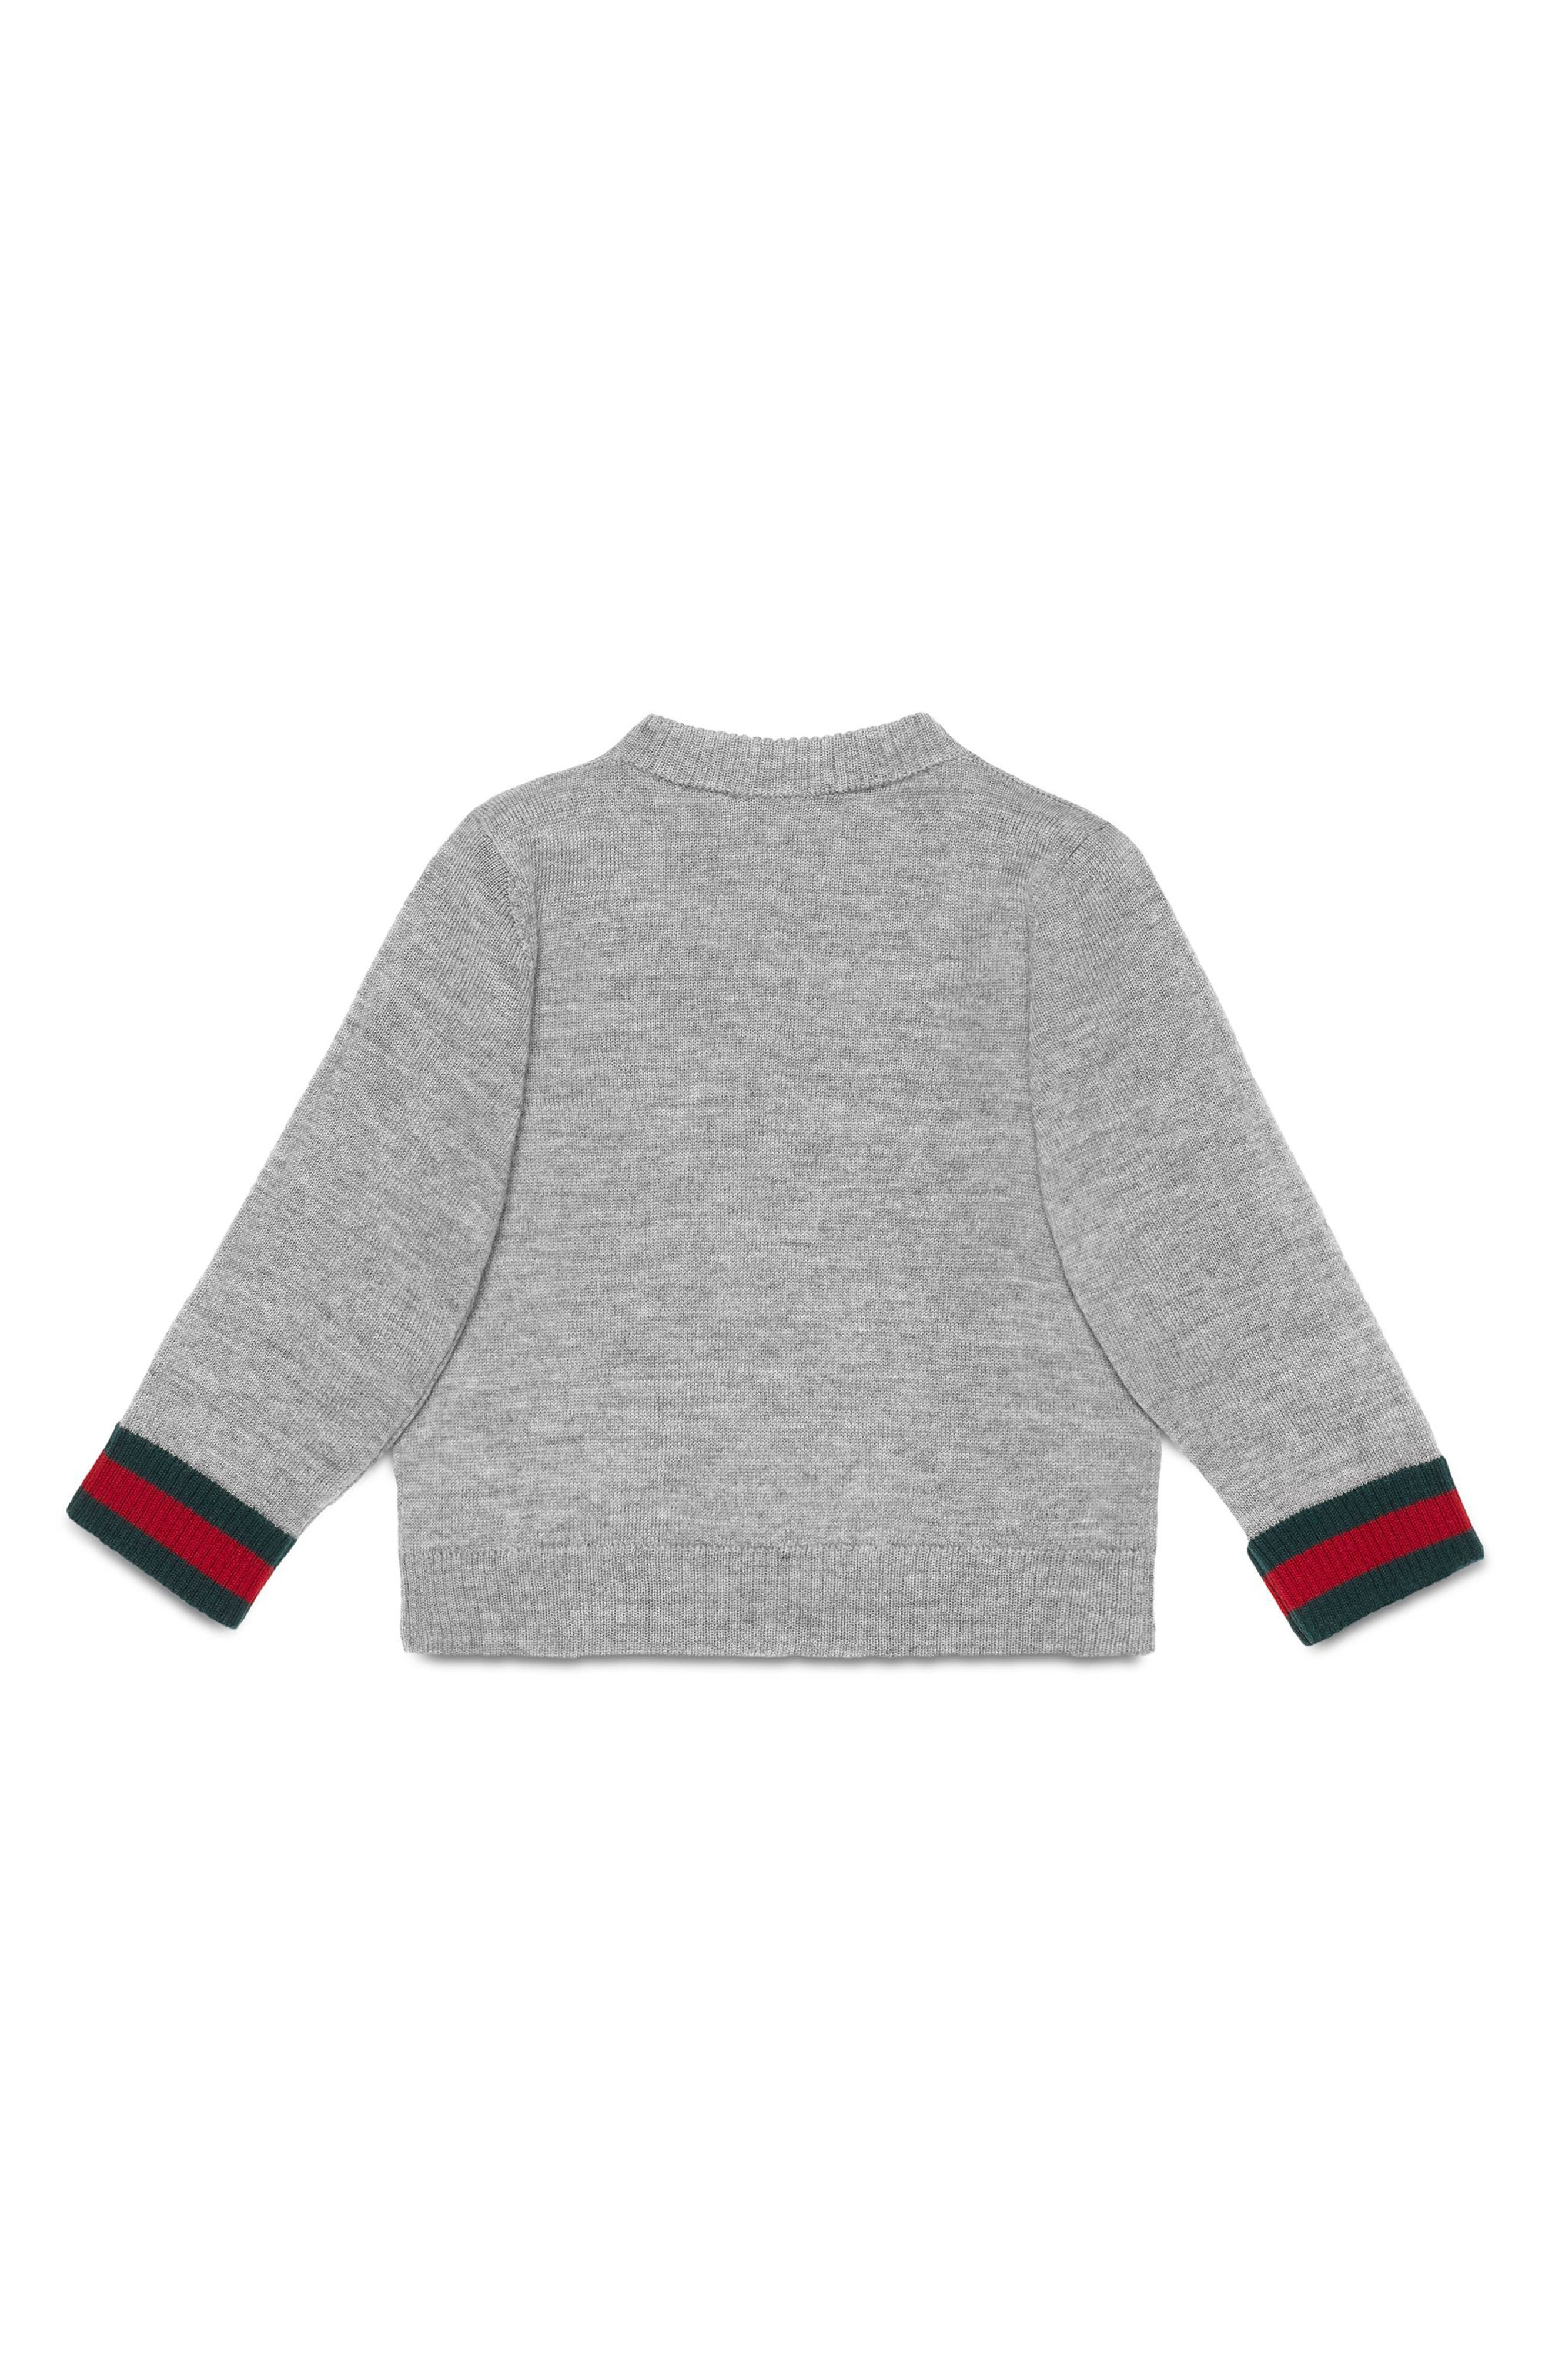 Wool Sweater,                             Alternate thumbnail 2, color,                             MULTI